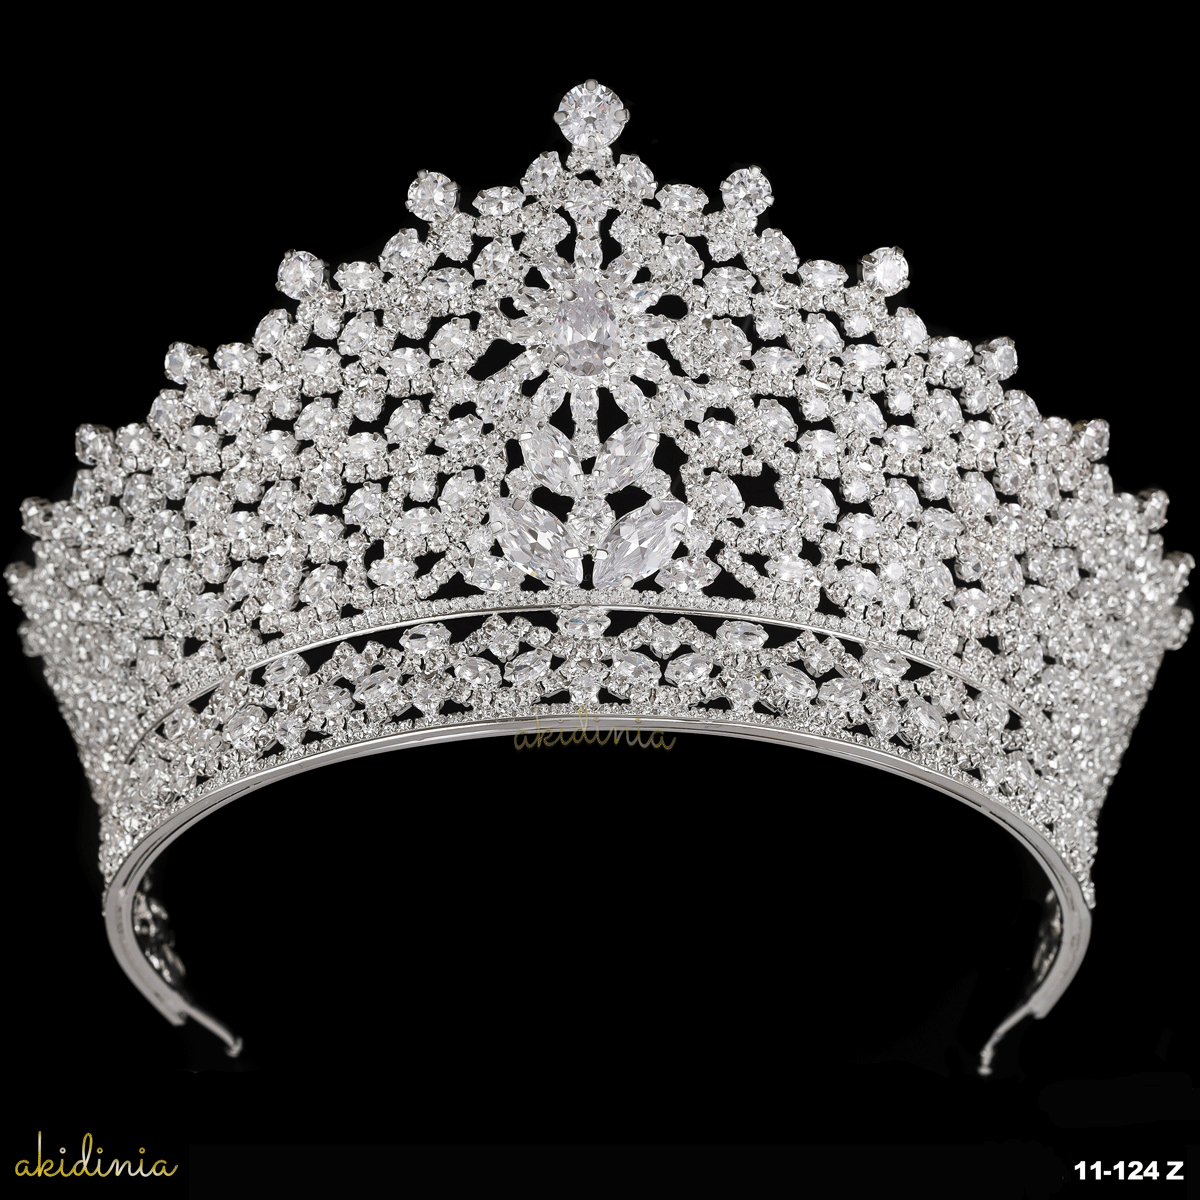 Ayla Royal Crown Akidinia Hair Accessories Collection Crown Royal Crown Design